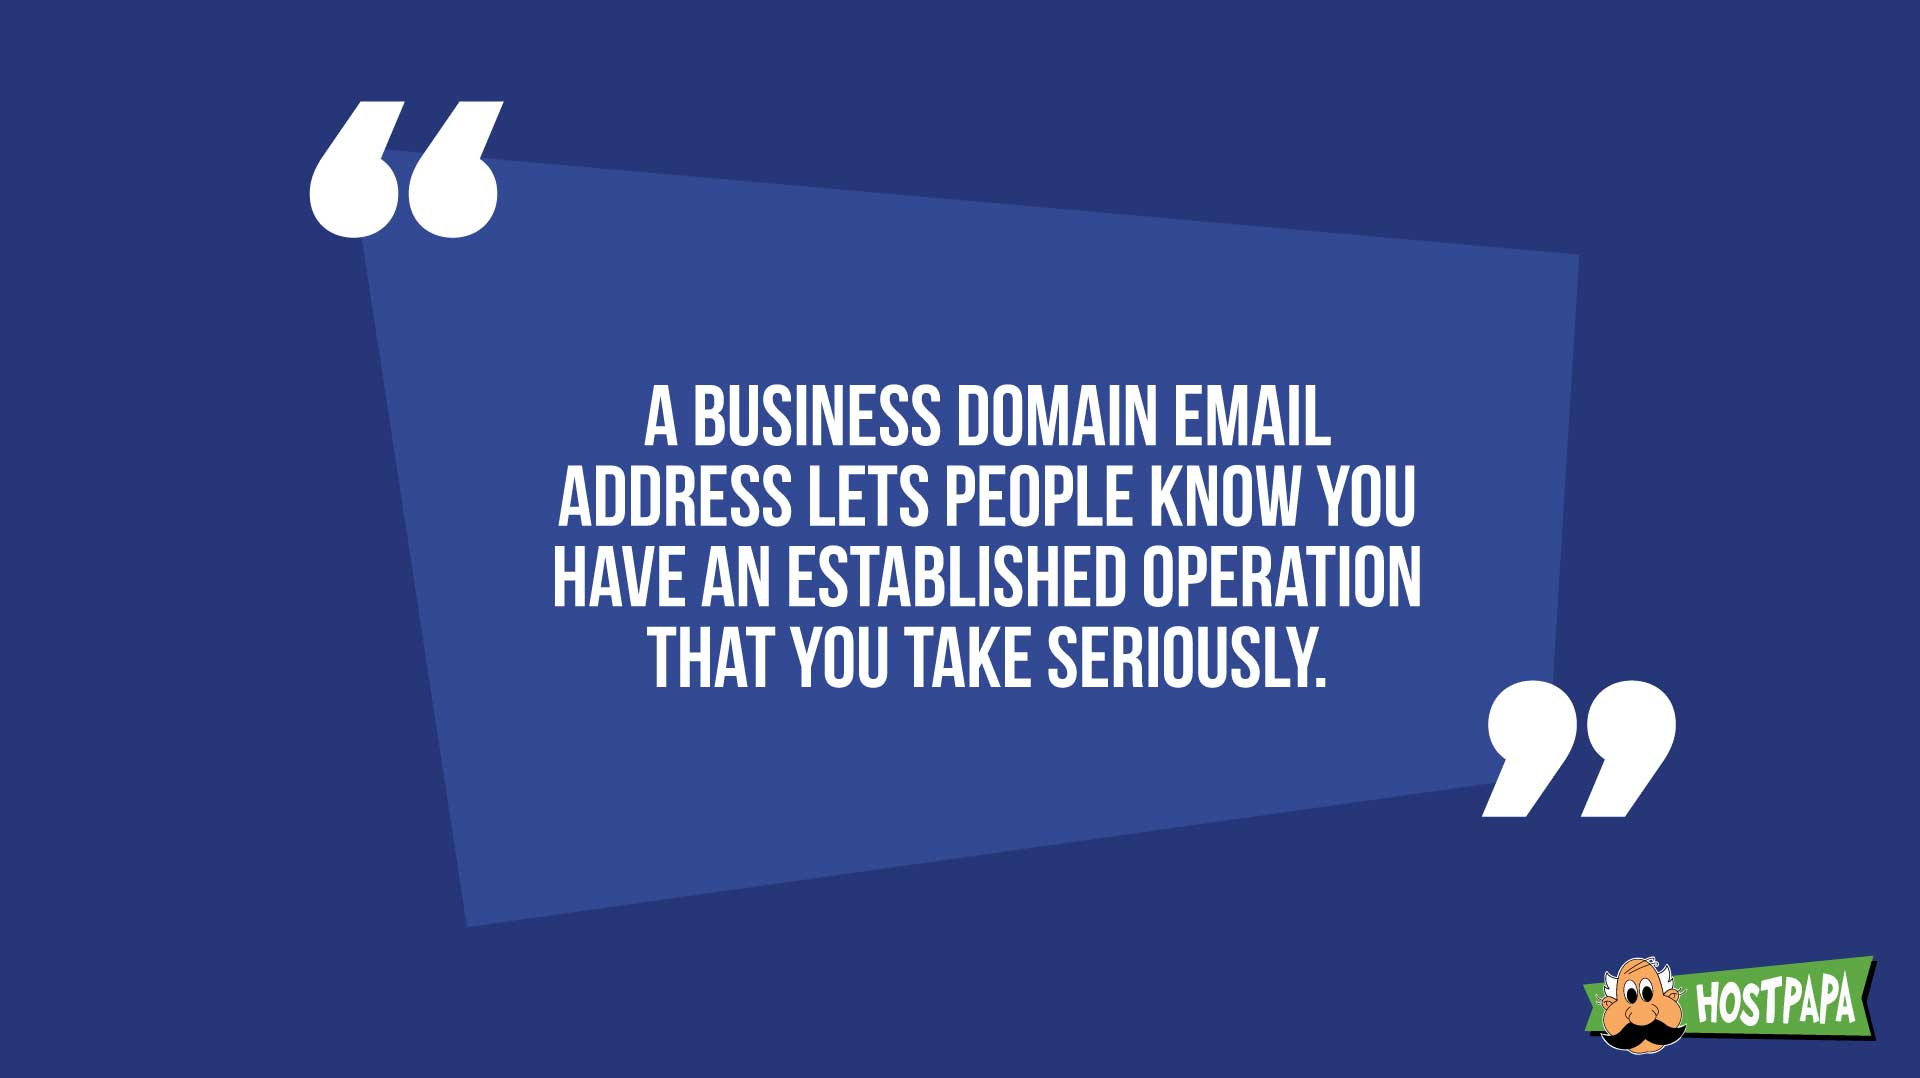 A business company email address lets people know you have an established operation that you take seriously